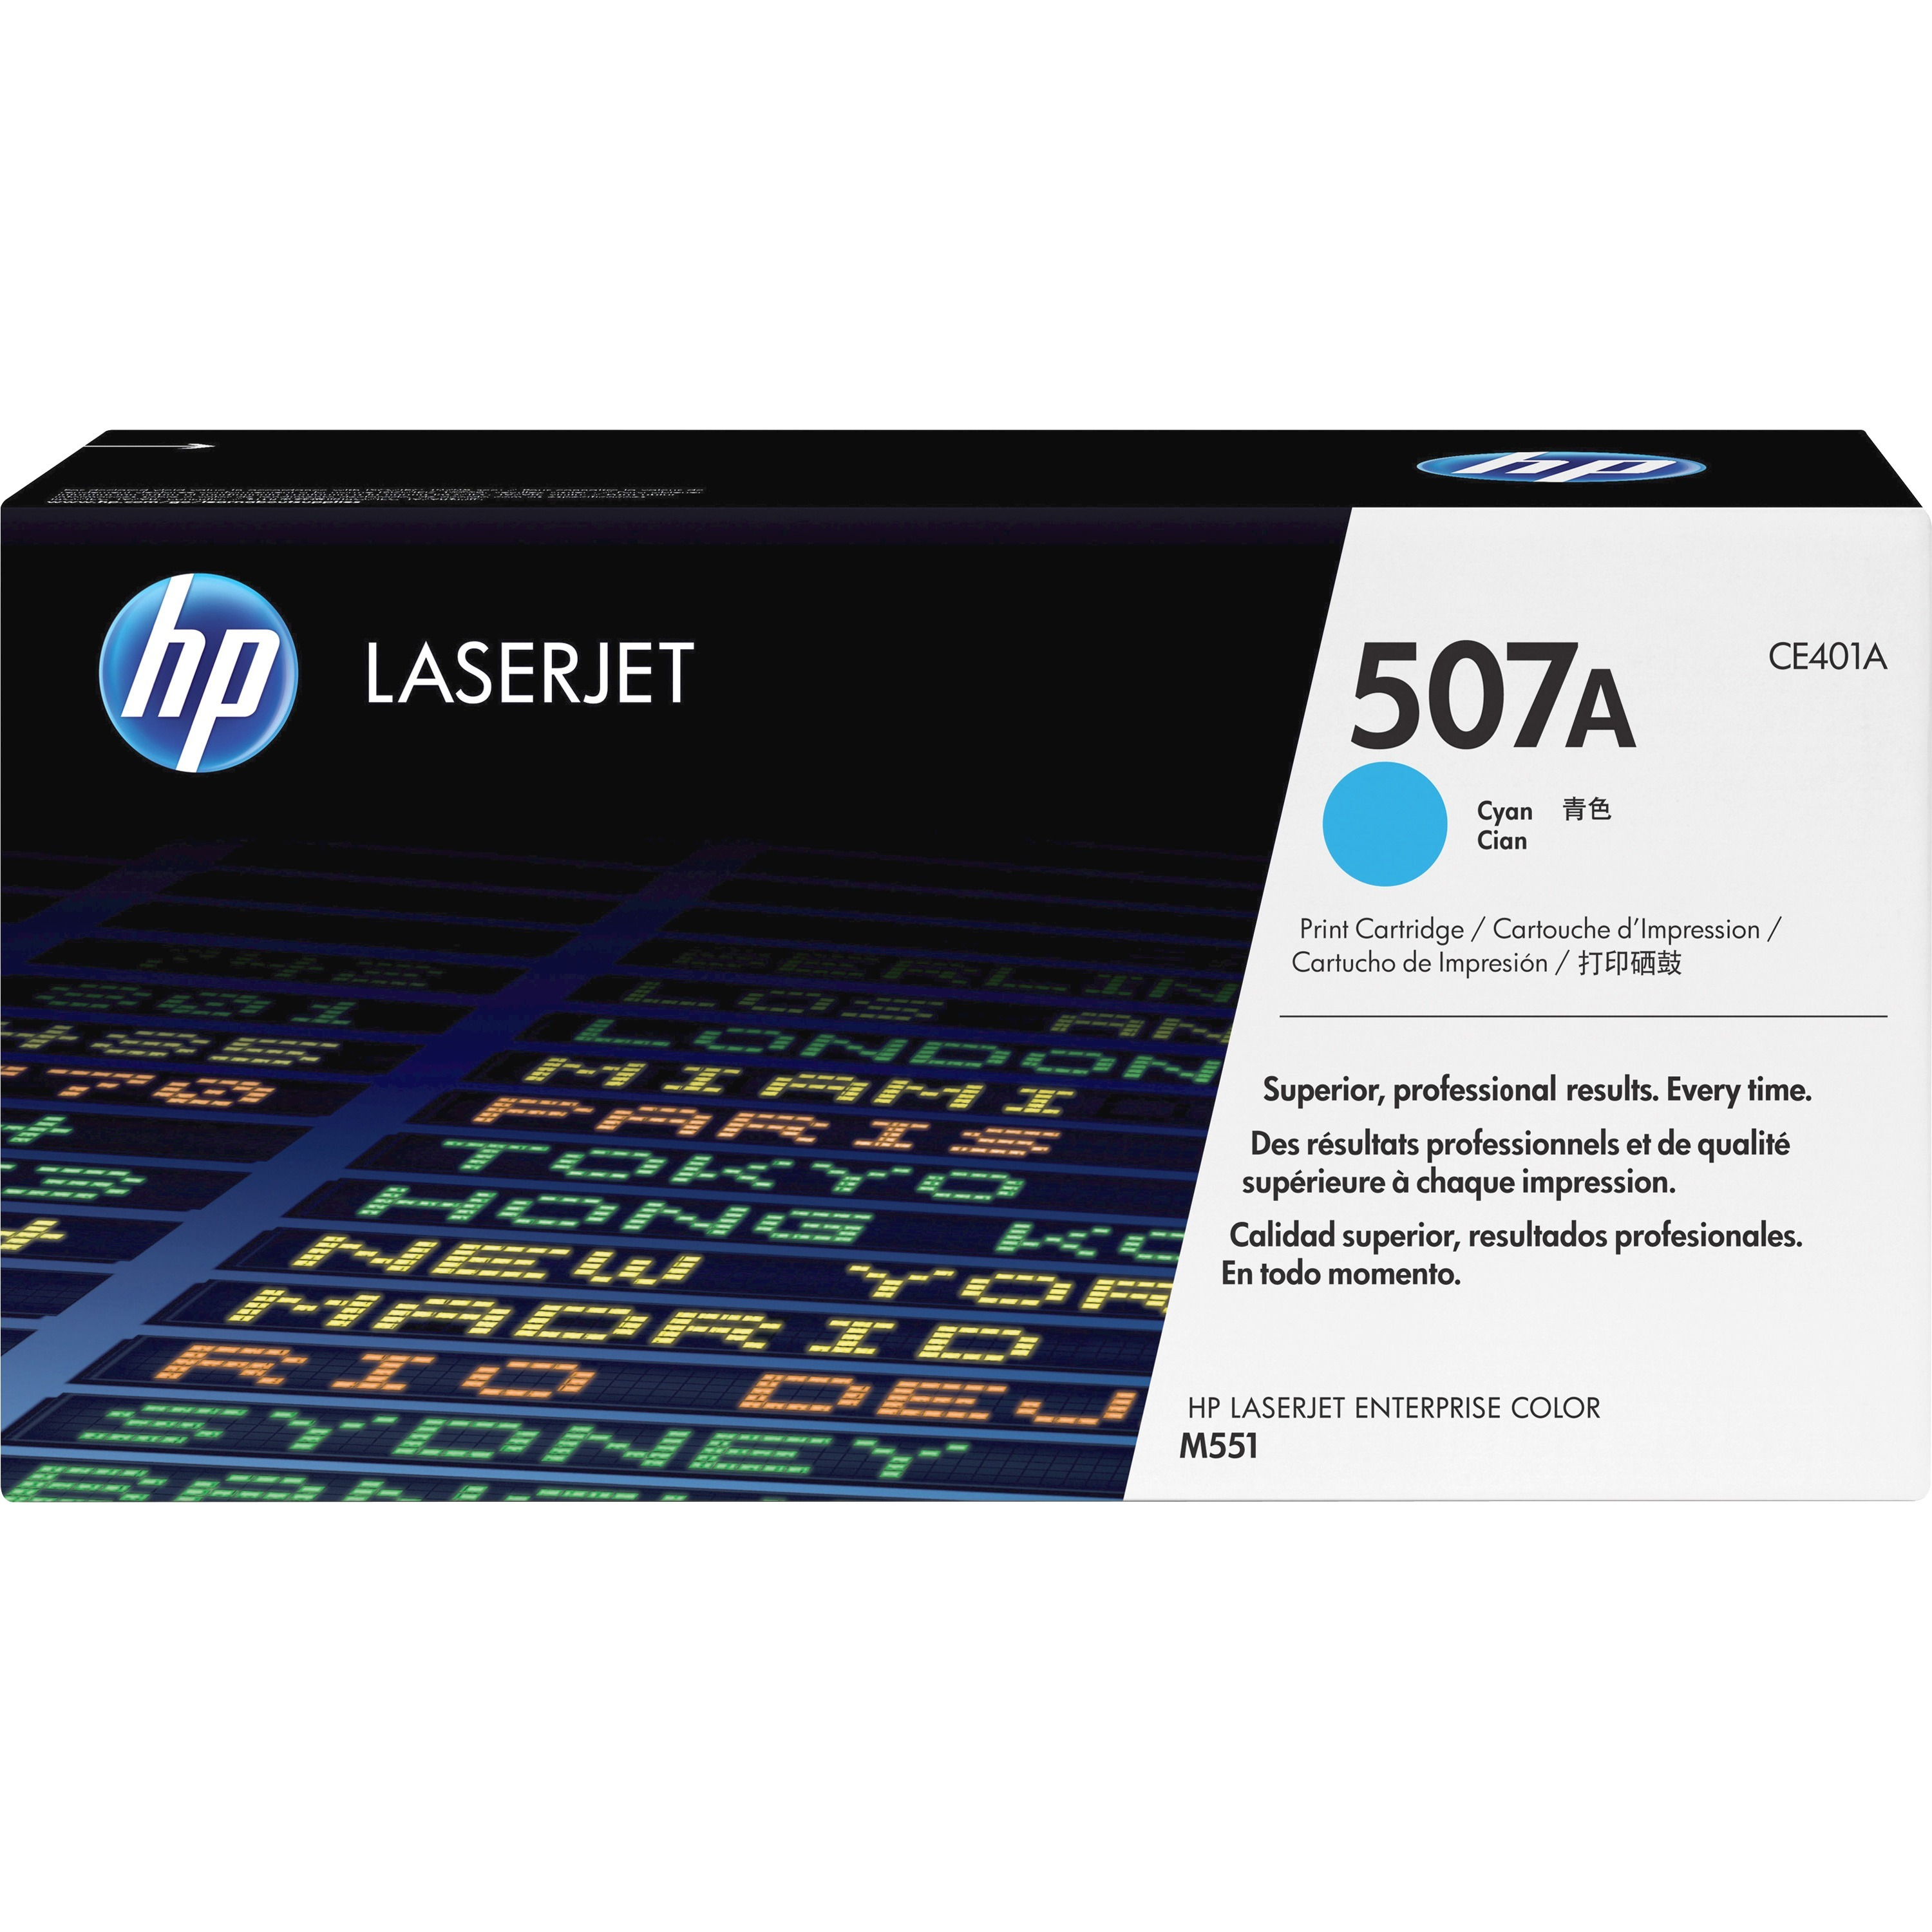 HP 507A Toner Cartridge - Cyan - Laser - 6000 Page - 1 Pack